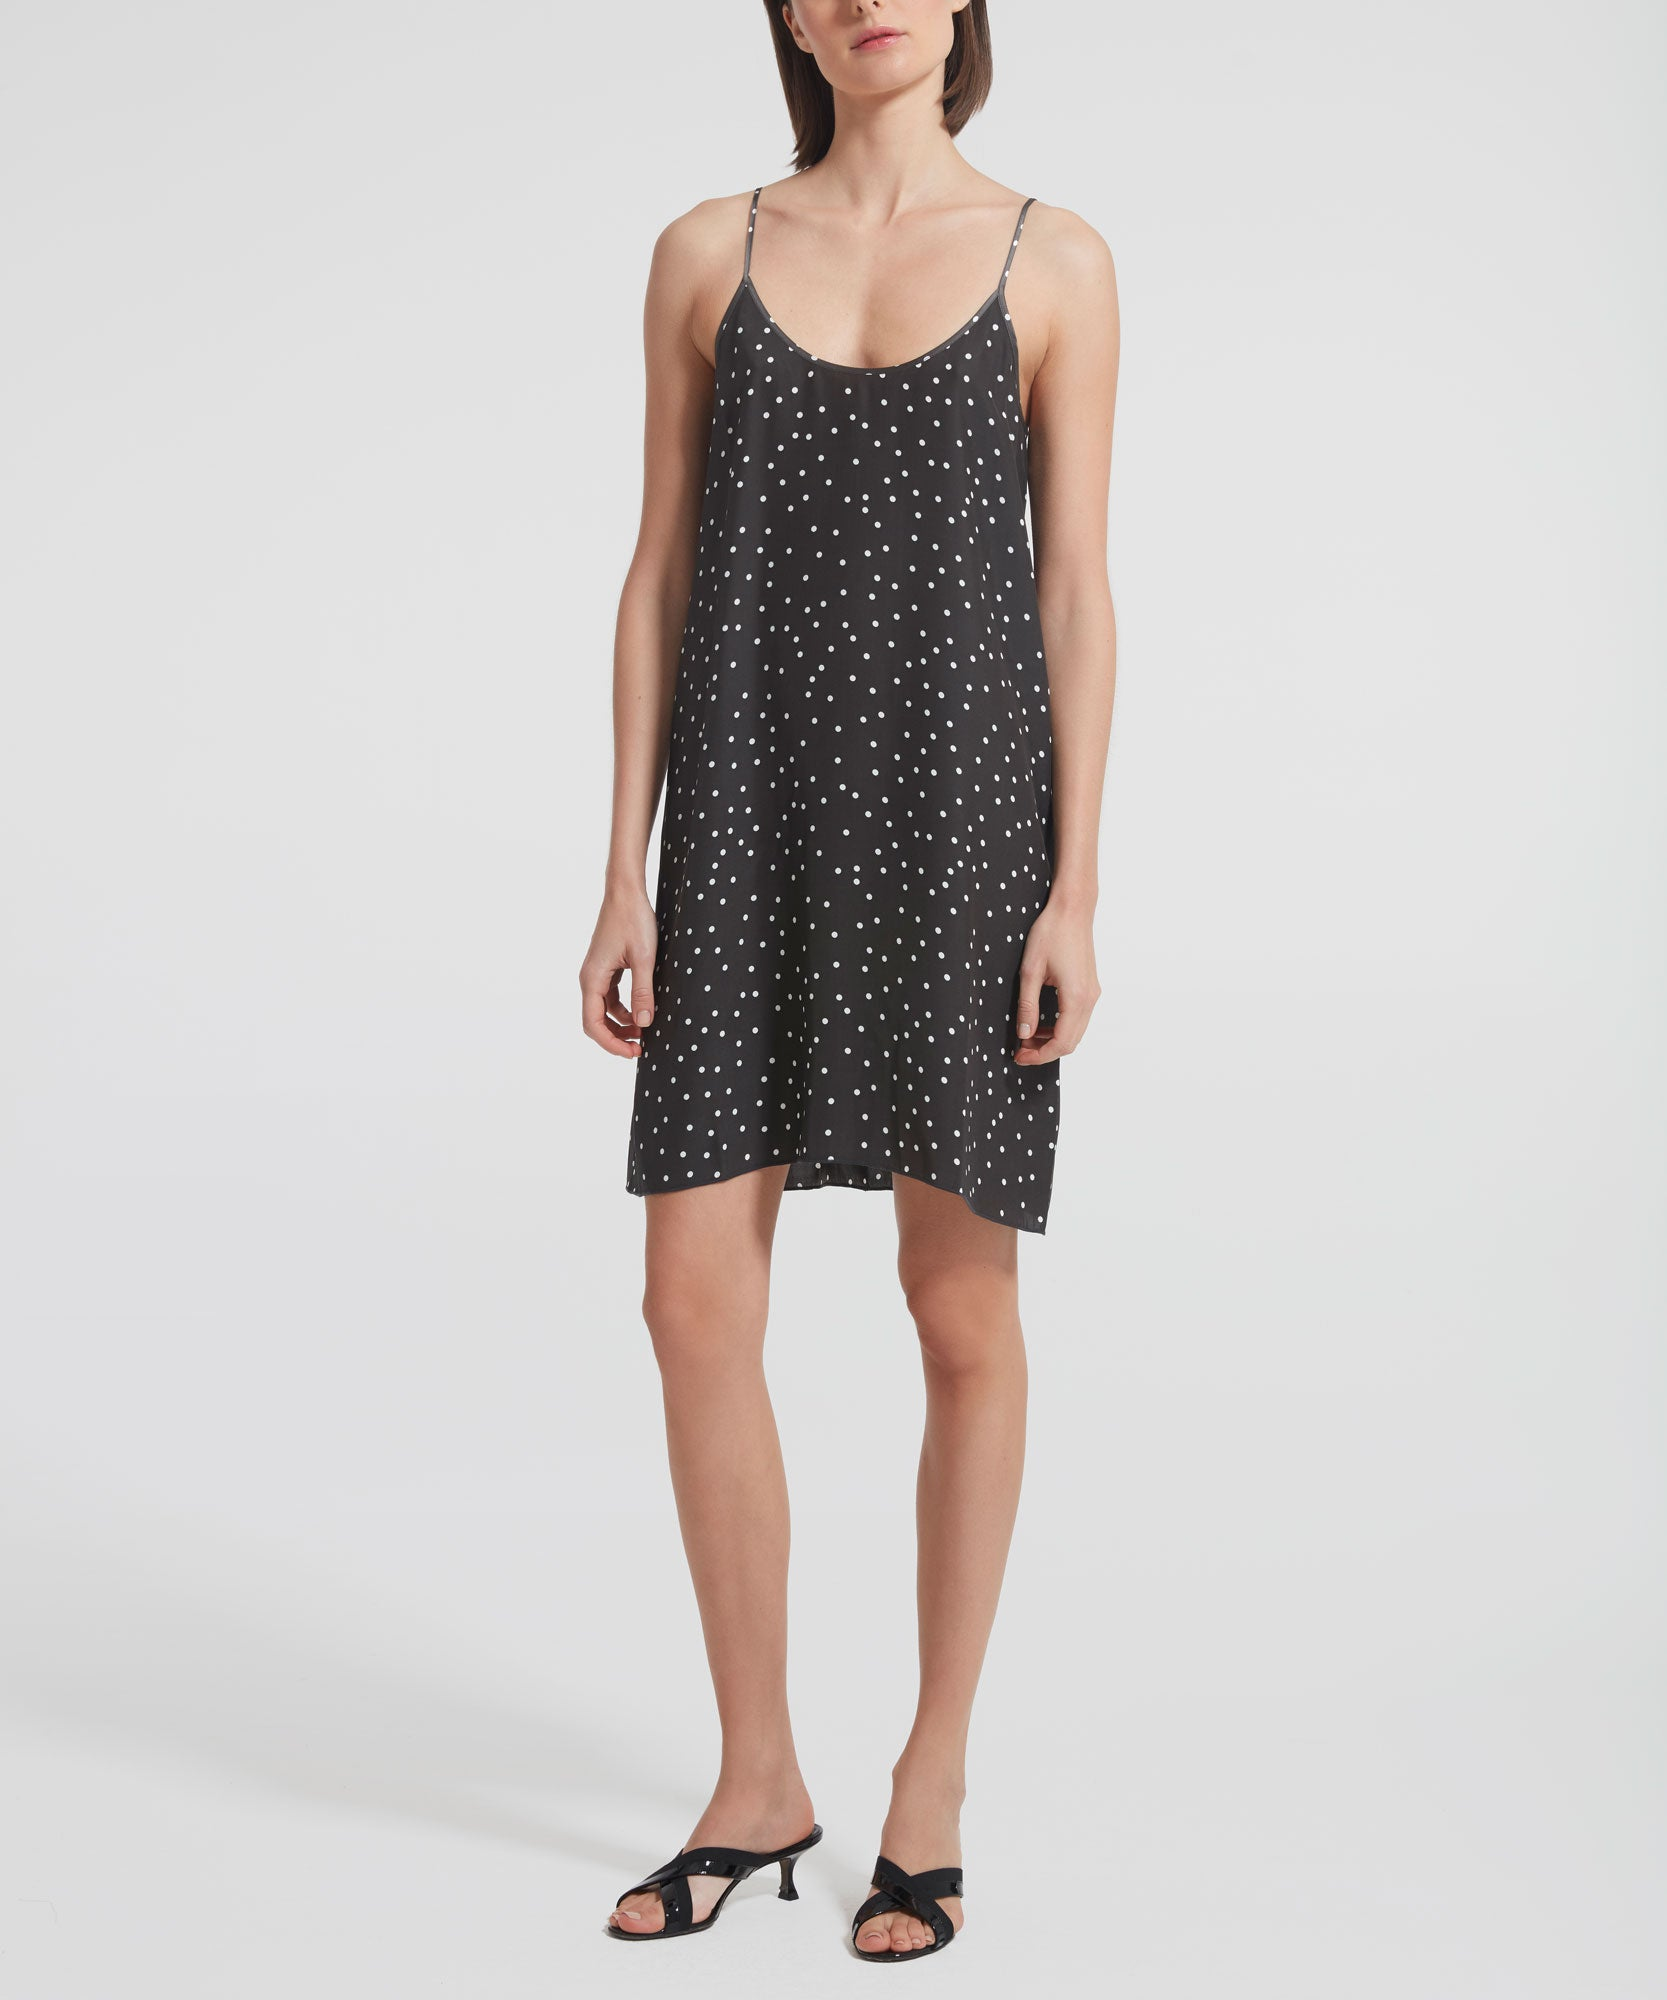 Pavement Polka Dot Silk Cami Dress - Women's Casual Dress by ATM Anthony Thomas Melillo